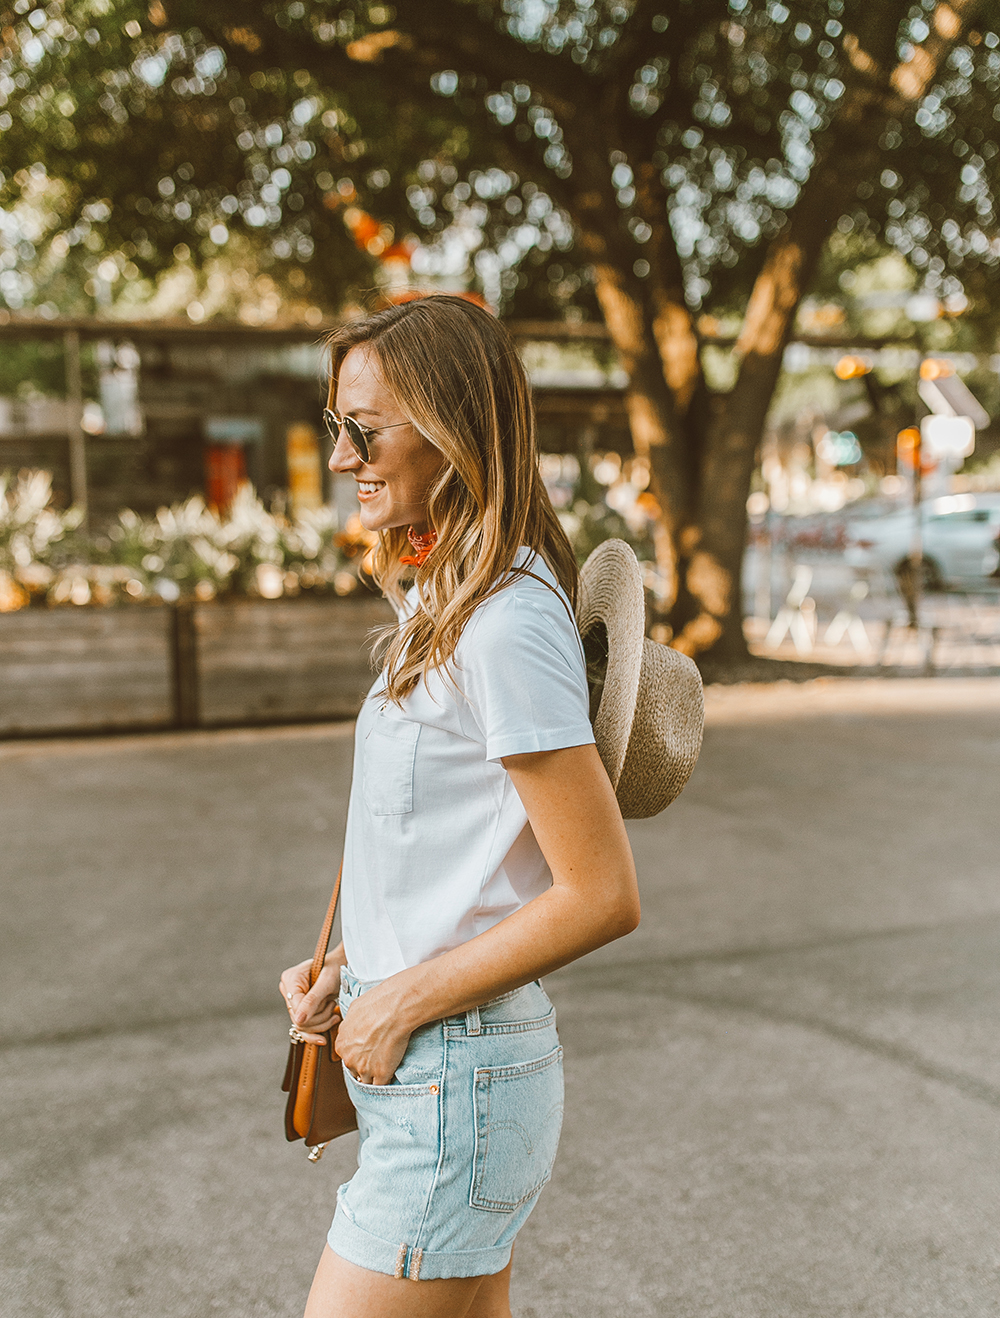 livvyland blog olivia watson austin texas fashion style blogger what to wear levis denim shorts festival outfit idea 3 - Summer time In Levi's